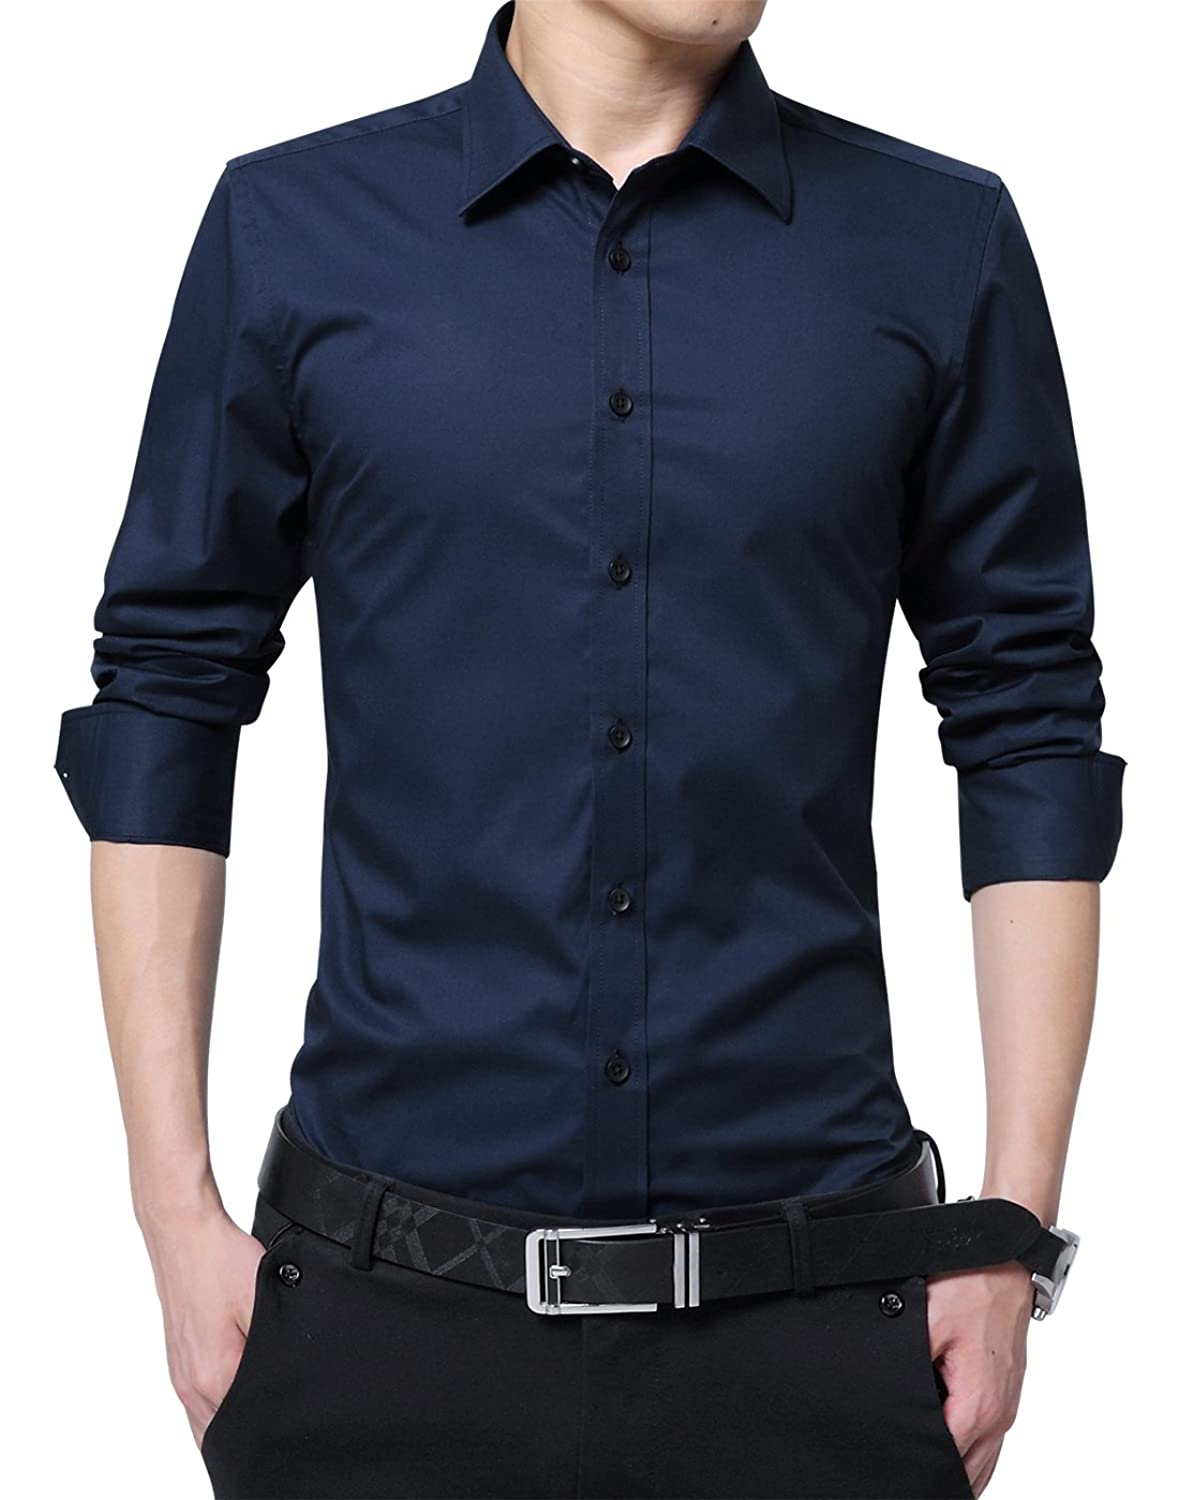 Xtapan Men's Long Short Sleeve Casual Slim Fit Cotton Fashion Button Down Dress Shirt by Xtapan